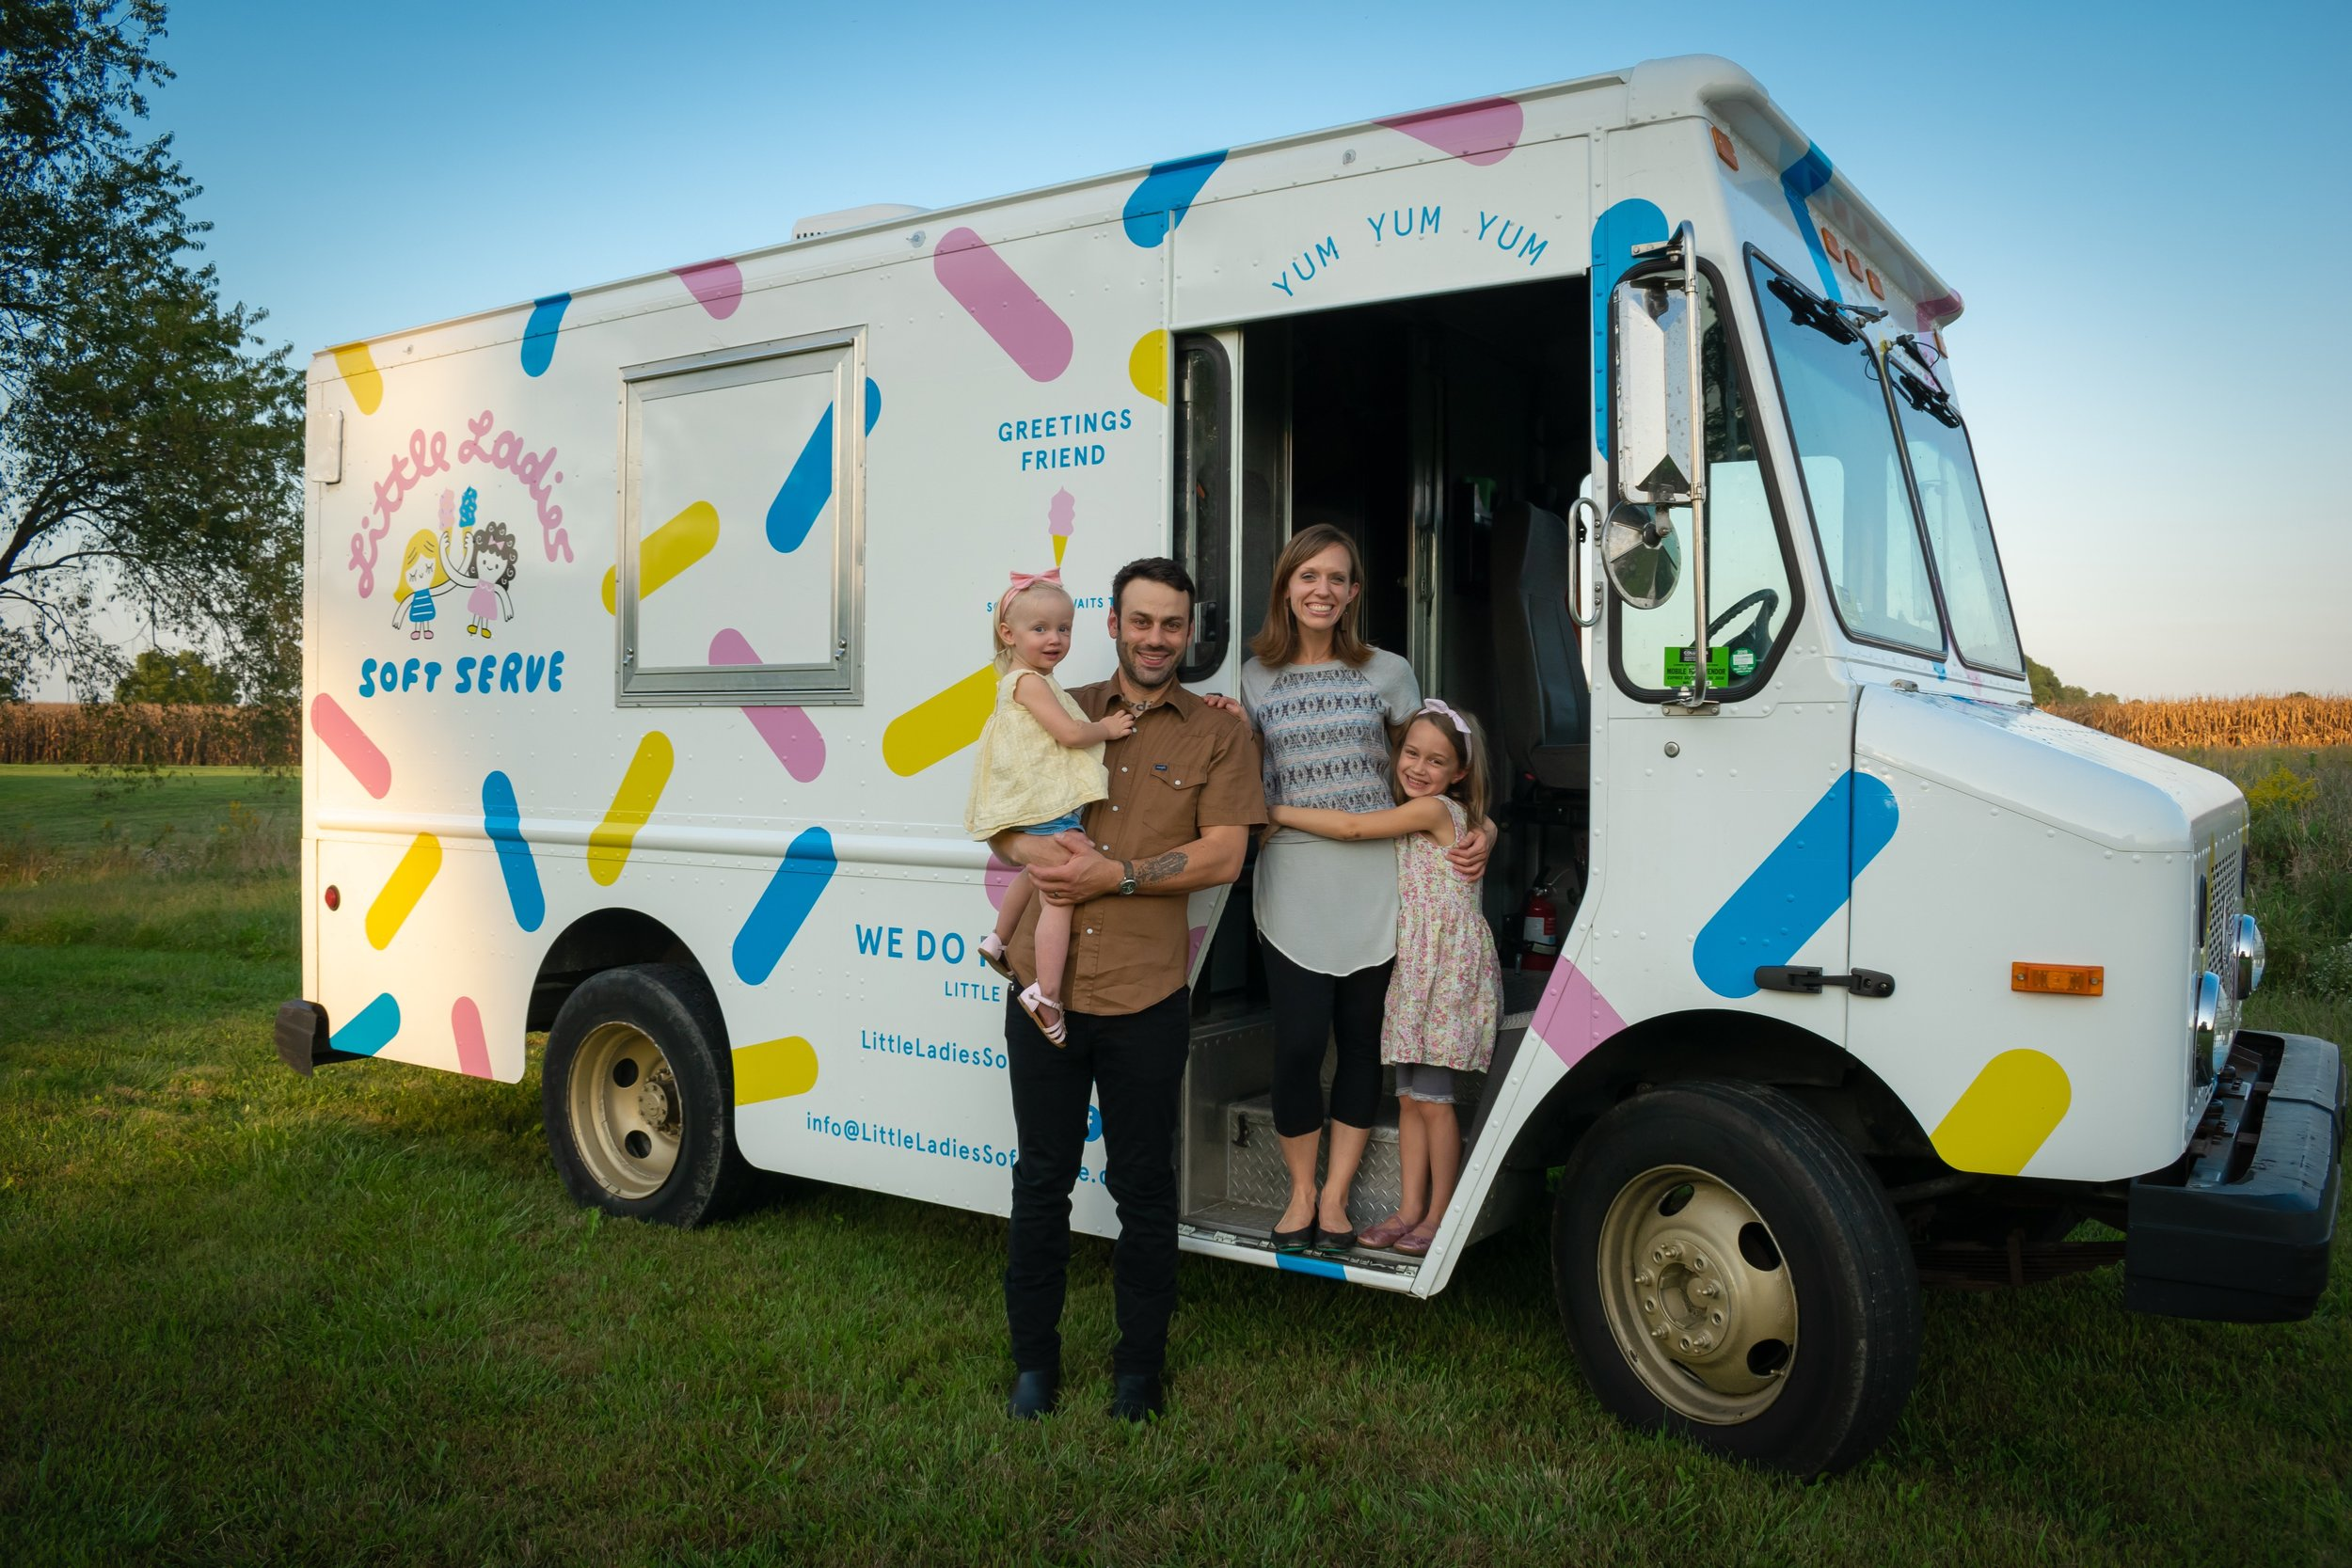 - The amazing thing? All our hard work paid off. In the summer of 2018, we opened Little Ladies Soft Serve, and ice cream has become a steady part of our family's diet.We have since joined a gym.